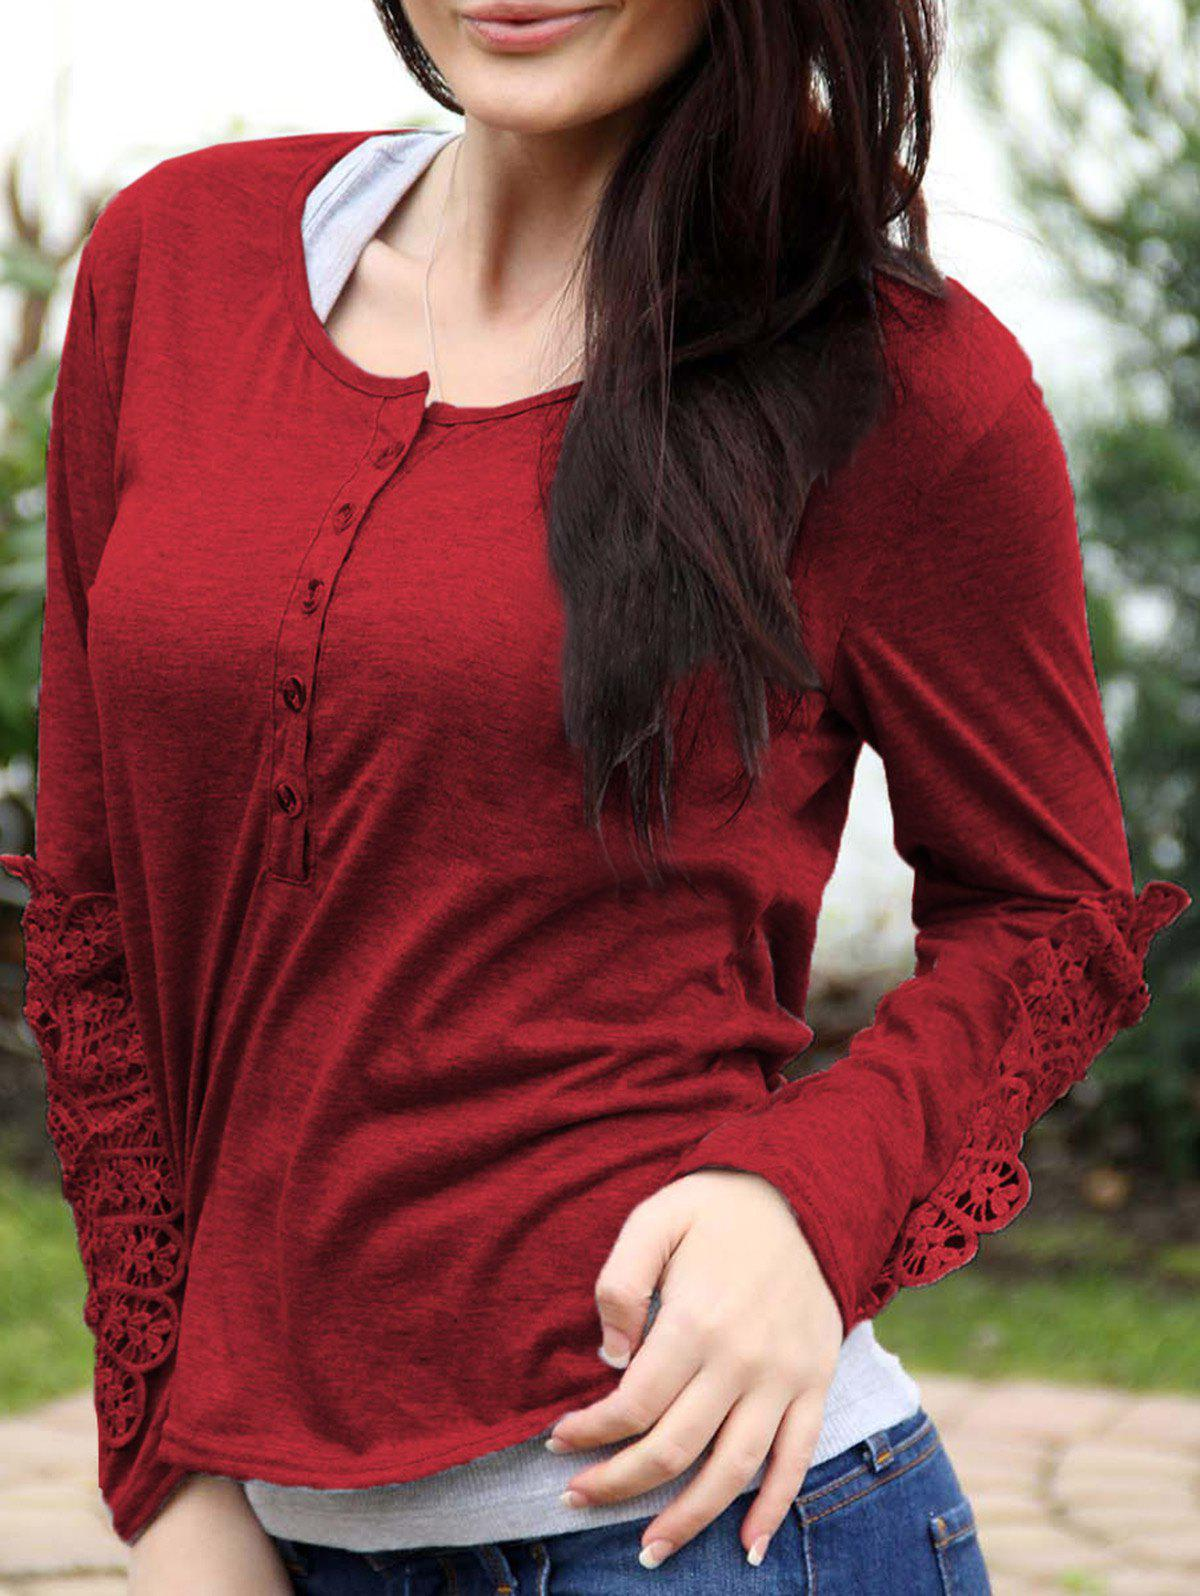 Casual Scoop Neck Lace Splicing Long Sleeve T-Shirt For WomenWOMEN<br><br>Size: M; Color: WINE RED; Material: Cotton Blends; Sleeve Length: Full; Collar: Scoop Neck; Style: Casual; Pattern Type: Solid; Weight: 0.1800kg; Package Contents: 1 x T-Shirt;